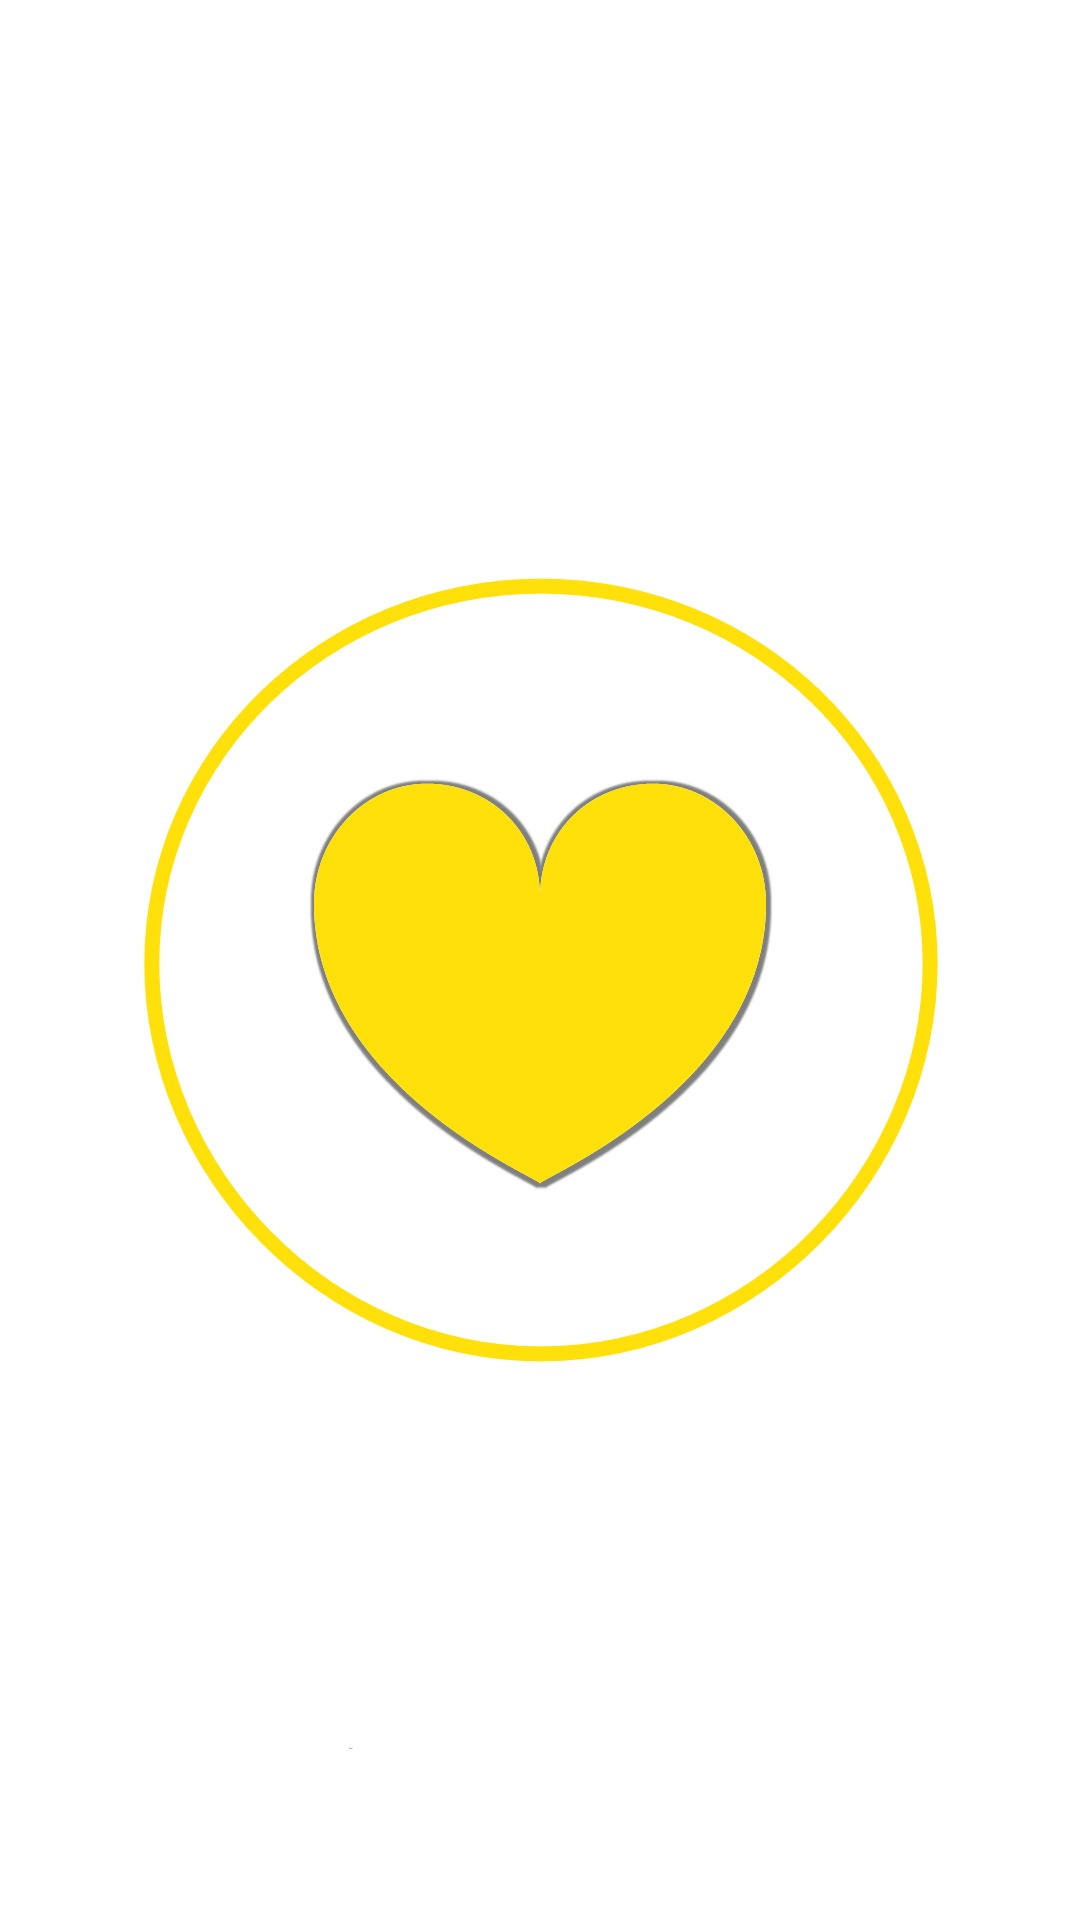 Instagram-cover-heart-yellow-lotnotes.com.jpg